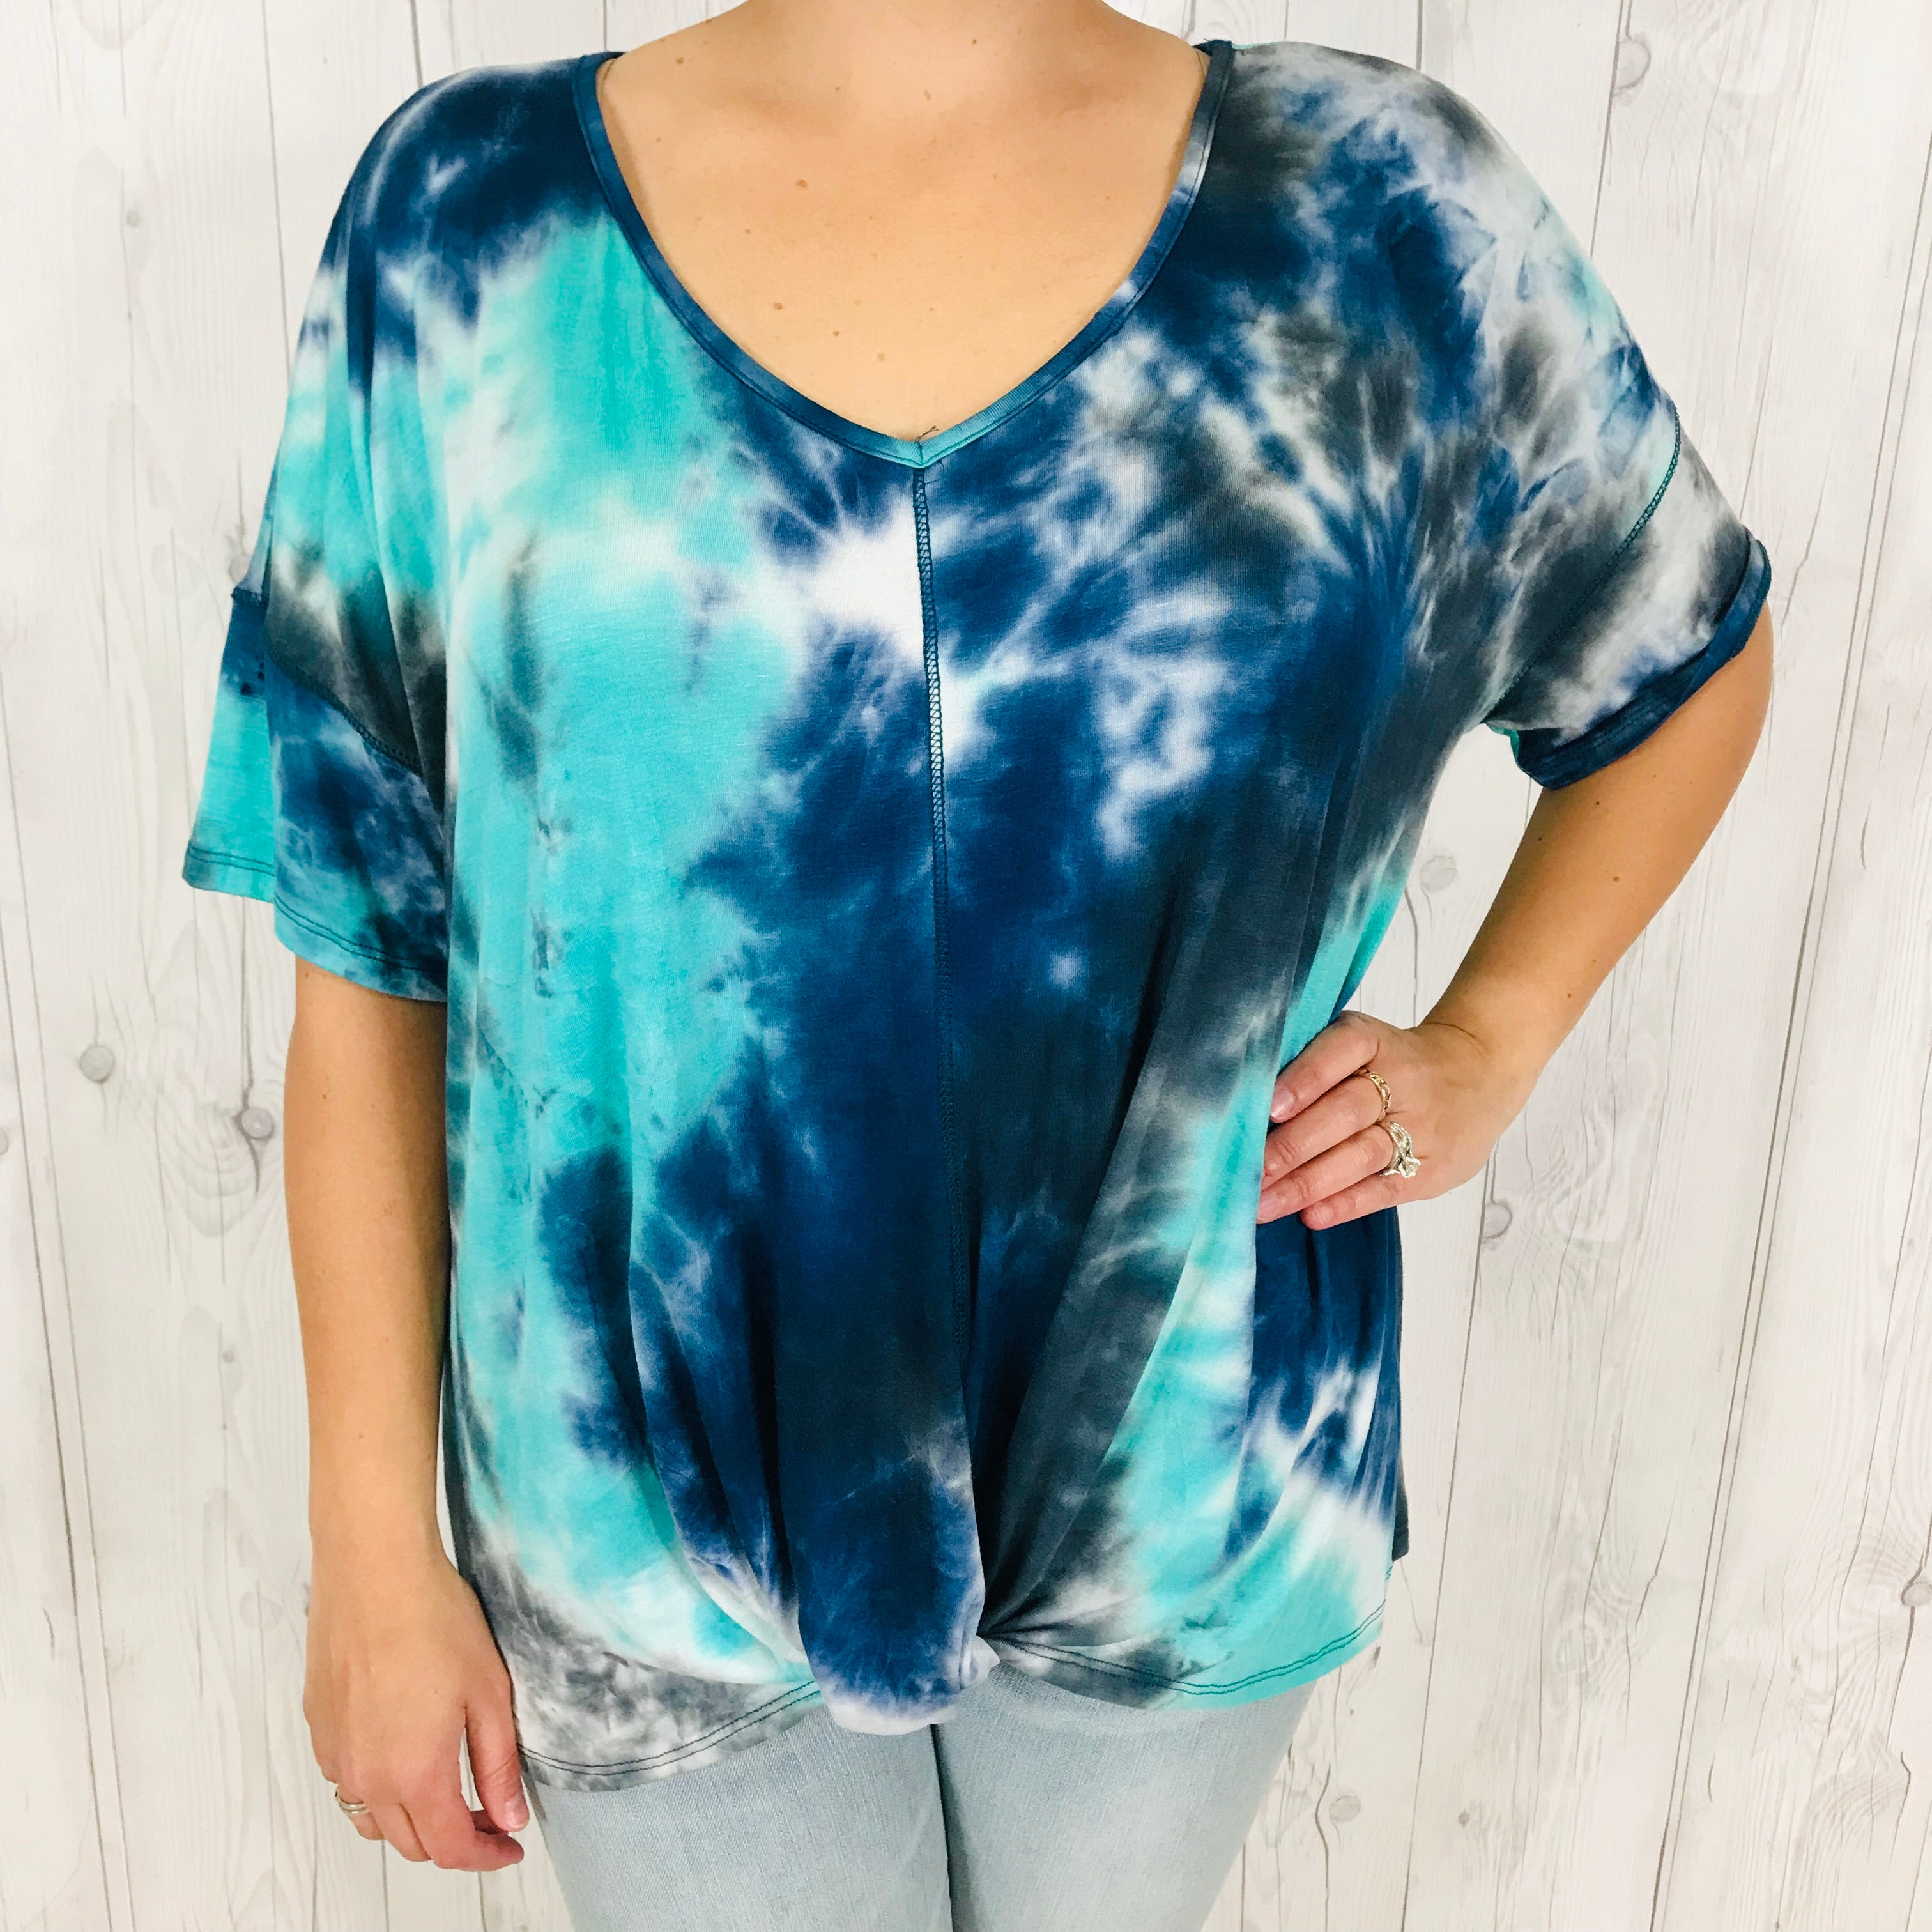 PLUS Blue and Teal Tie Dye V-Neck Short Sleeve with Twist Front